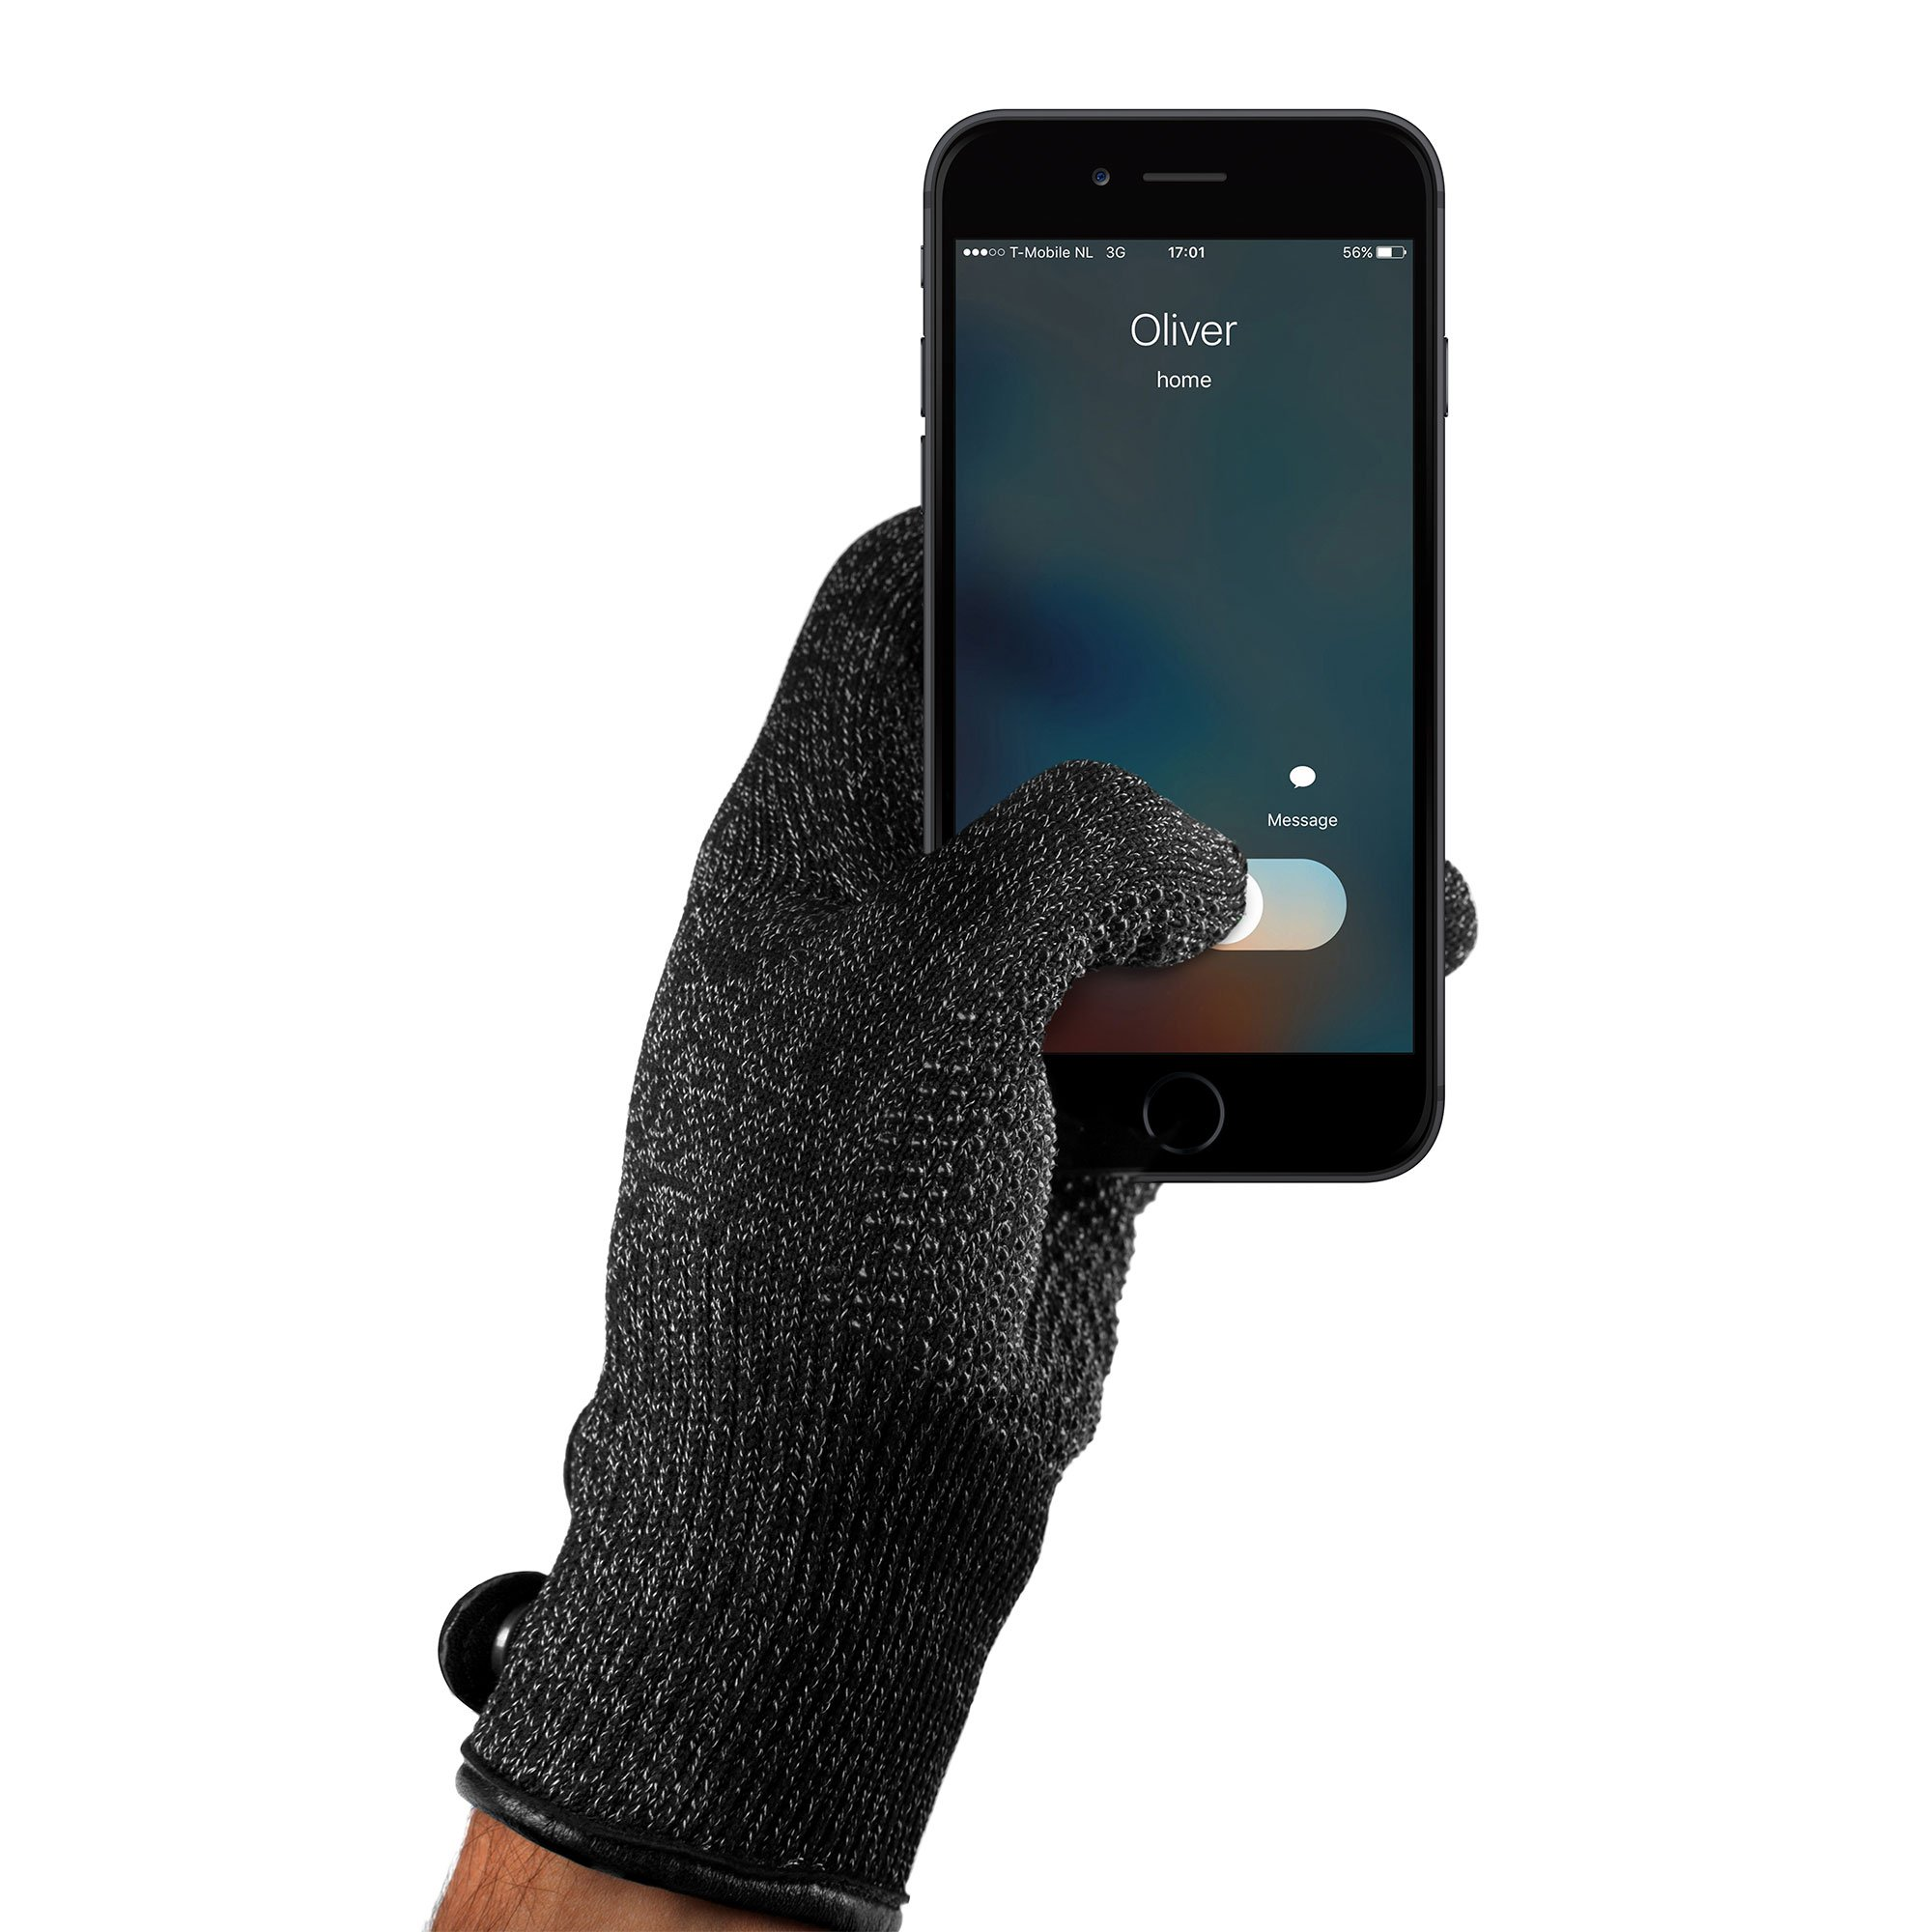 Mujjo Single Layered Touchscreen Winter Gloves| Knitted Smartphone Texting Gloves with Leather Cuffs, Magnetic Snap Closure & Anti-Slip Grip (Large) by Mujjo